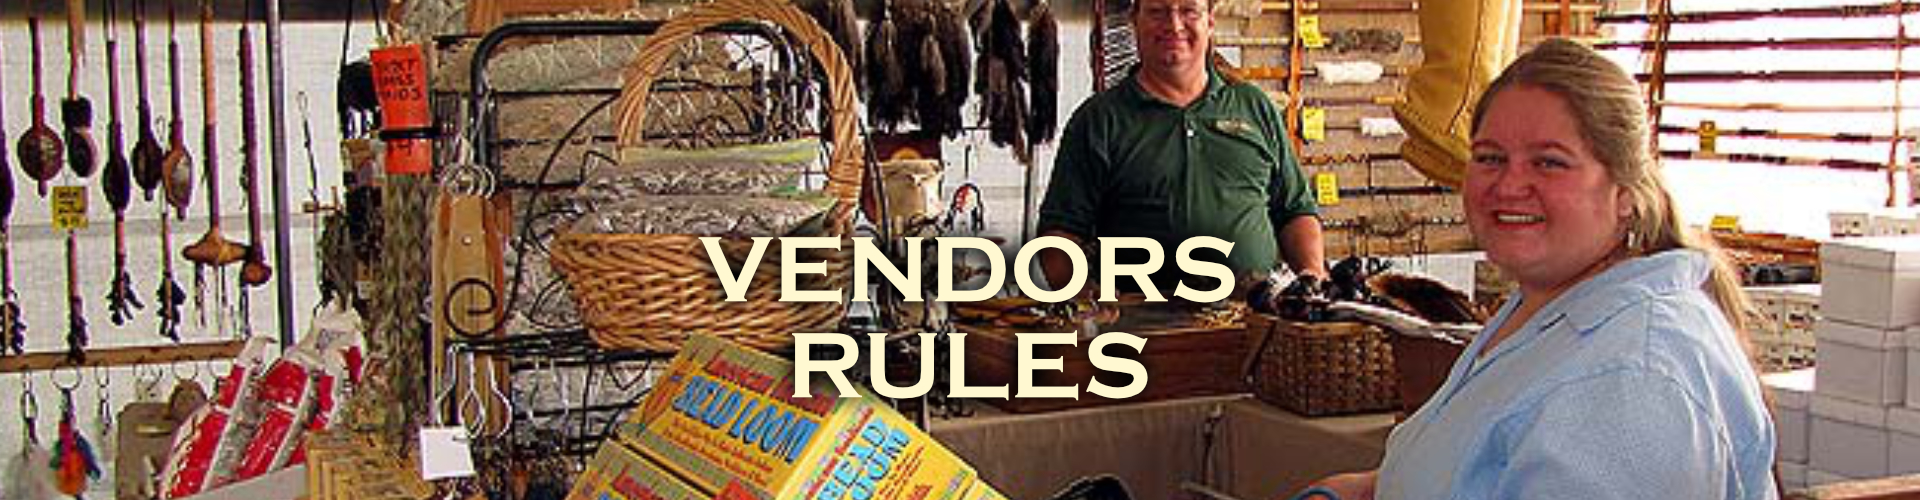 Musical Echoes Vendor Rules